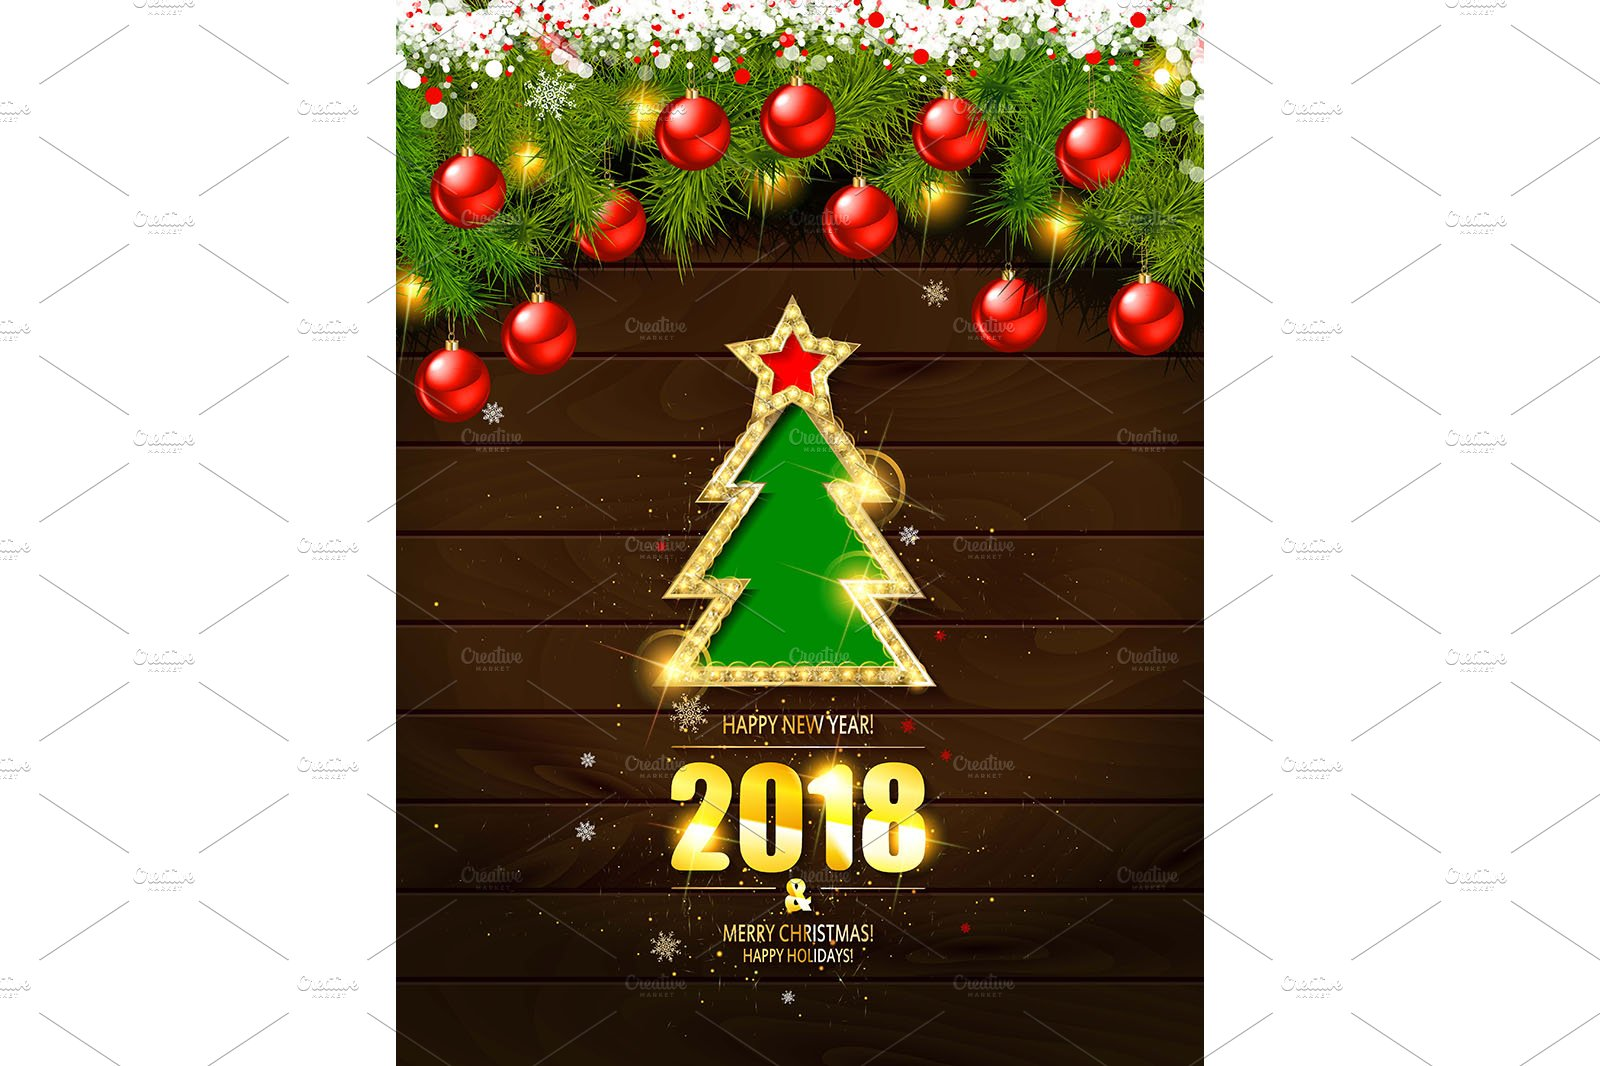 Merry Christmas Poster Template ~ Graphics ~ Creative Market